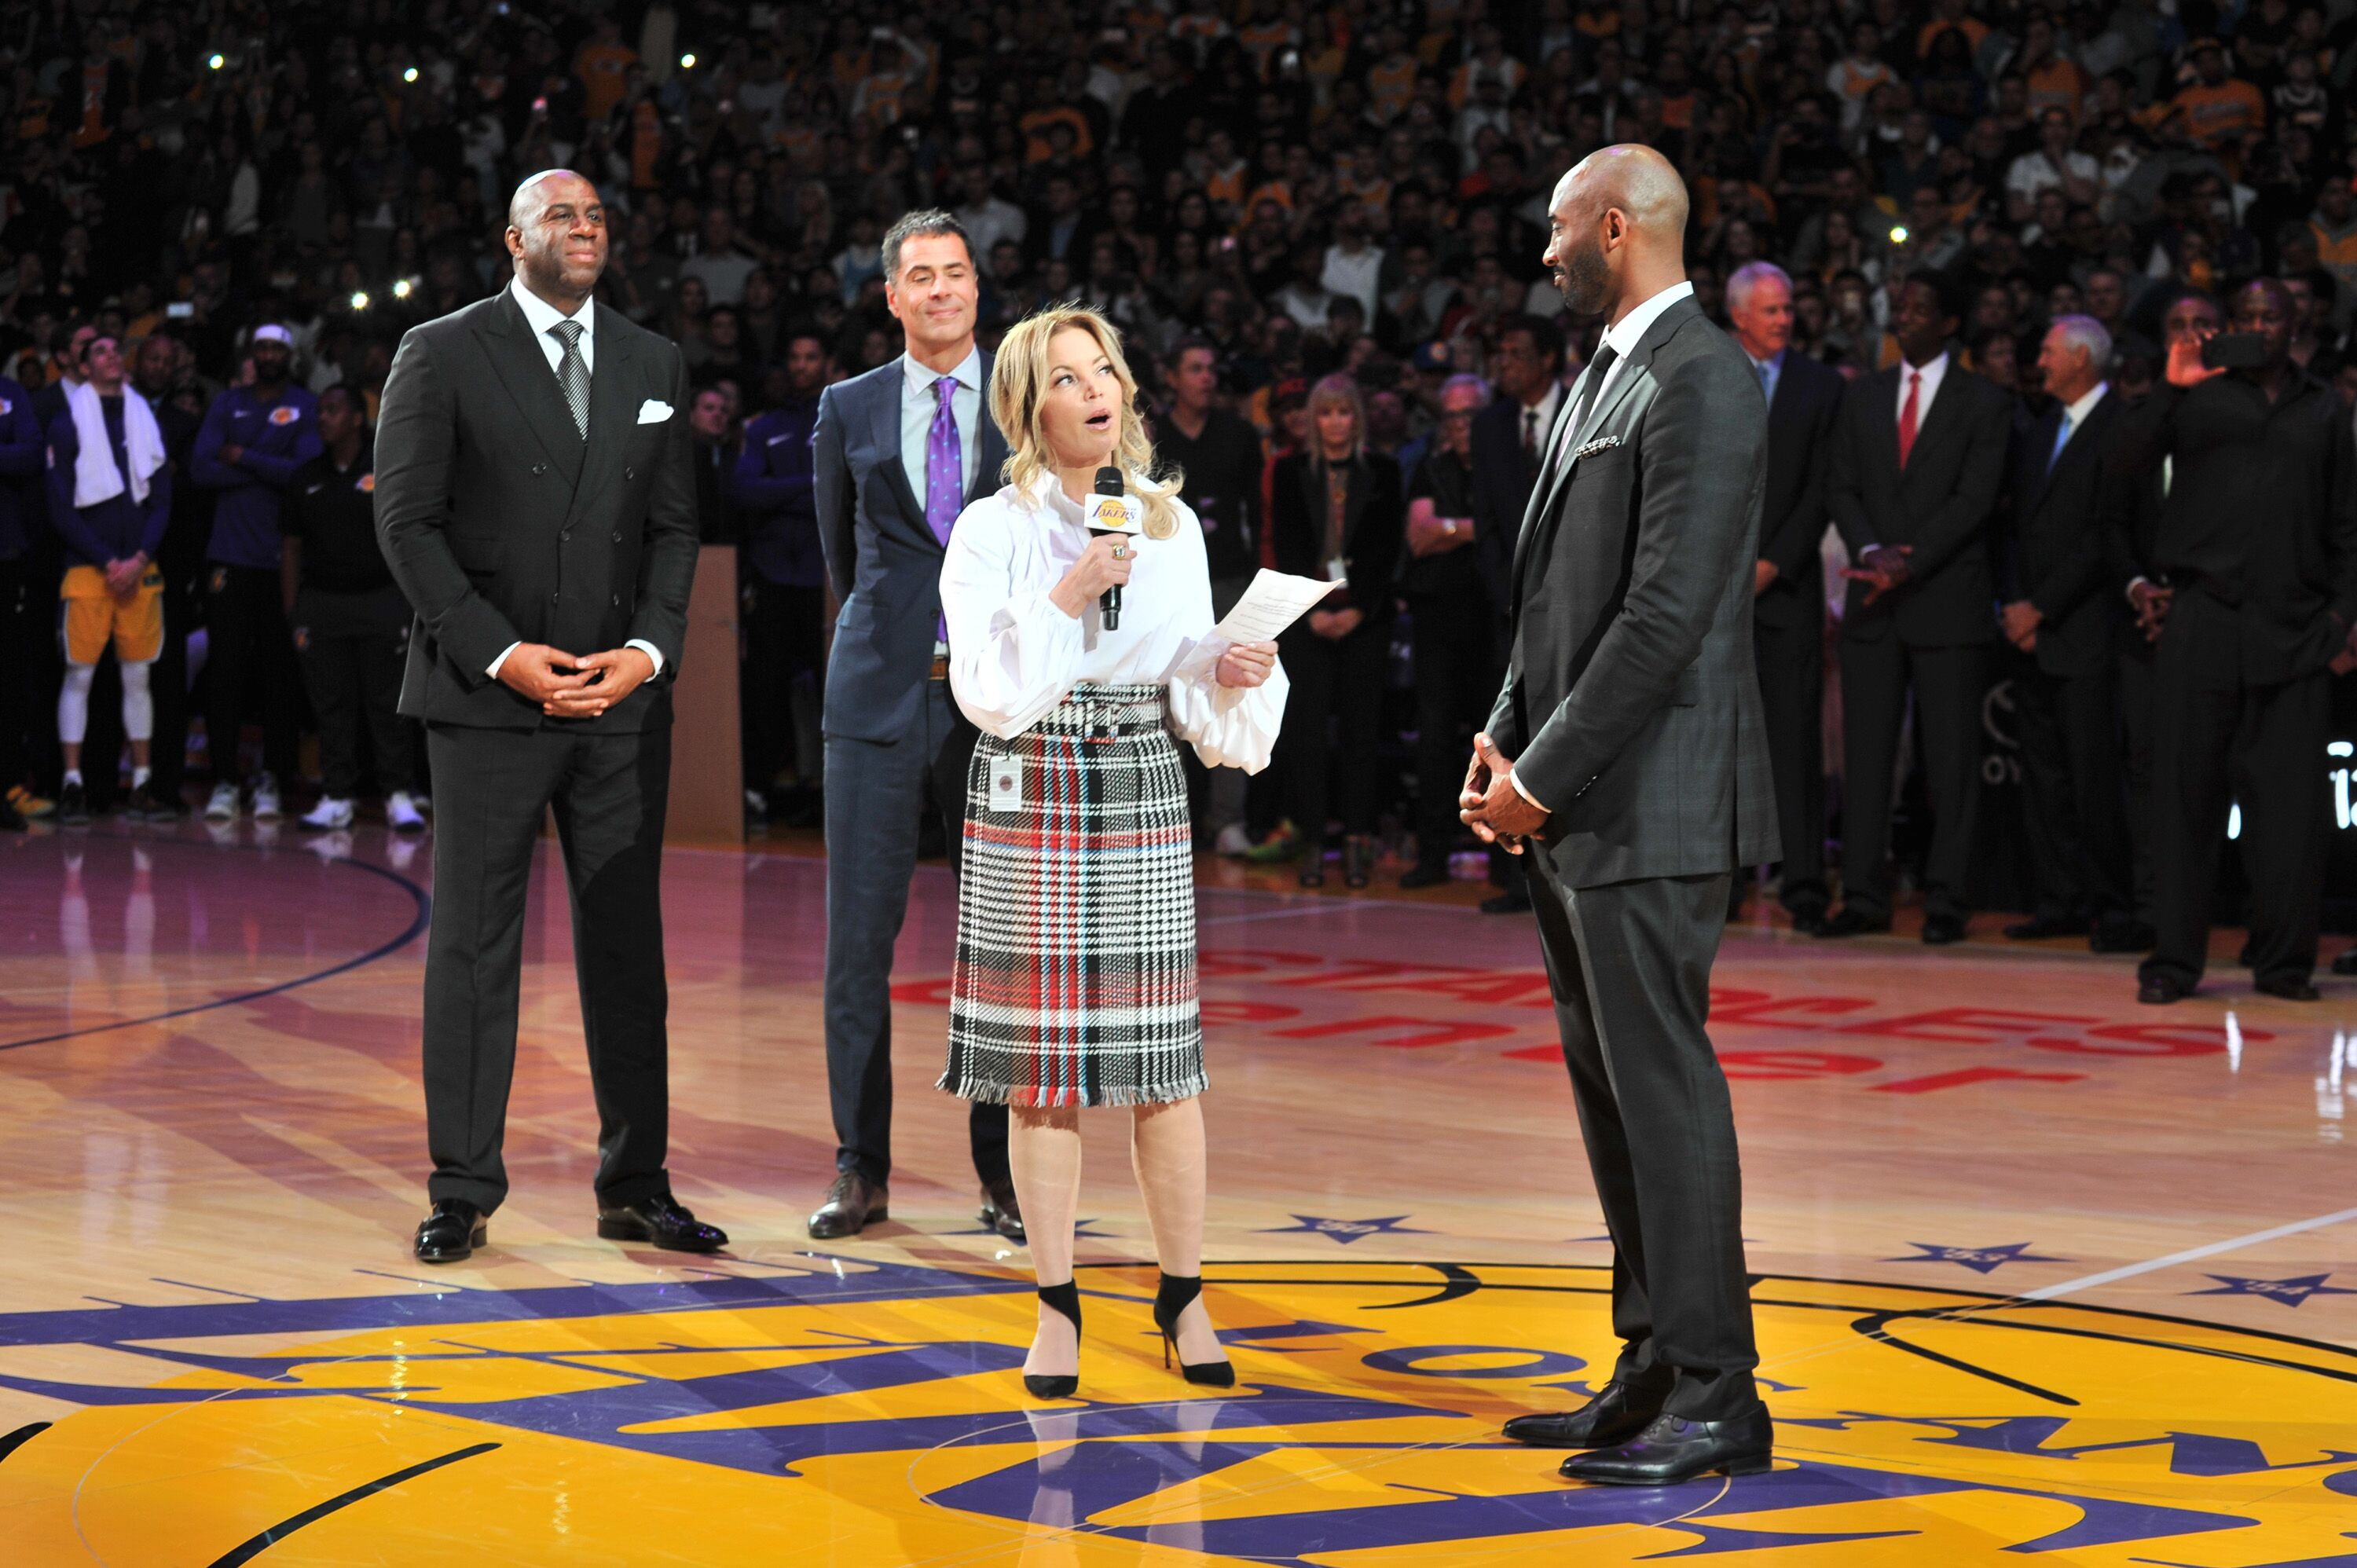 895203088-celebrities-at-the-los-angeles-lakers-game.jpg